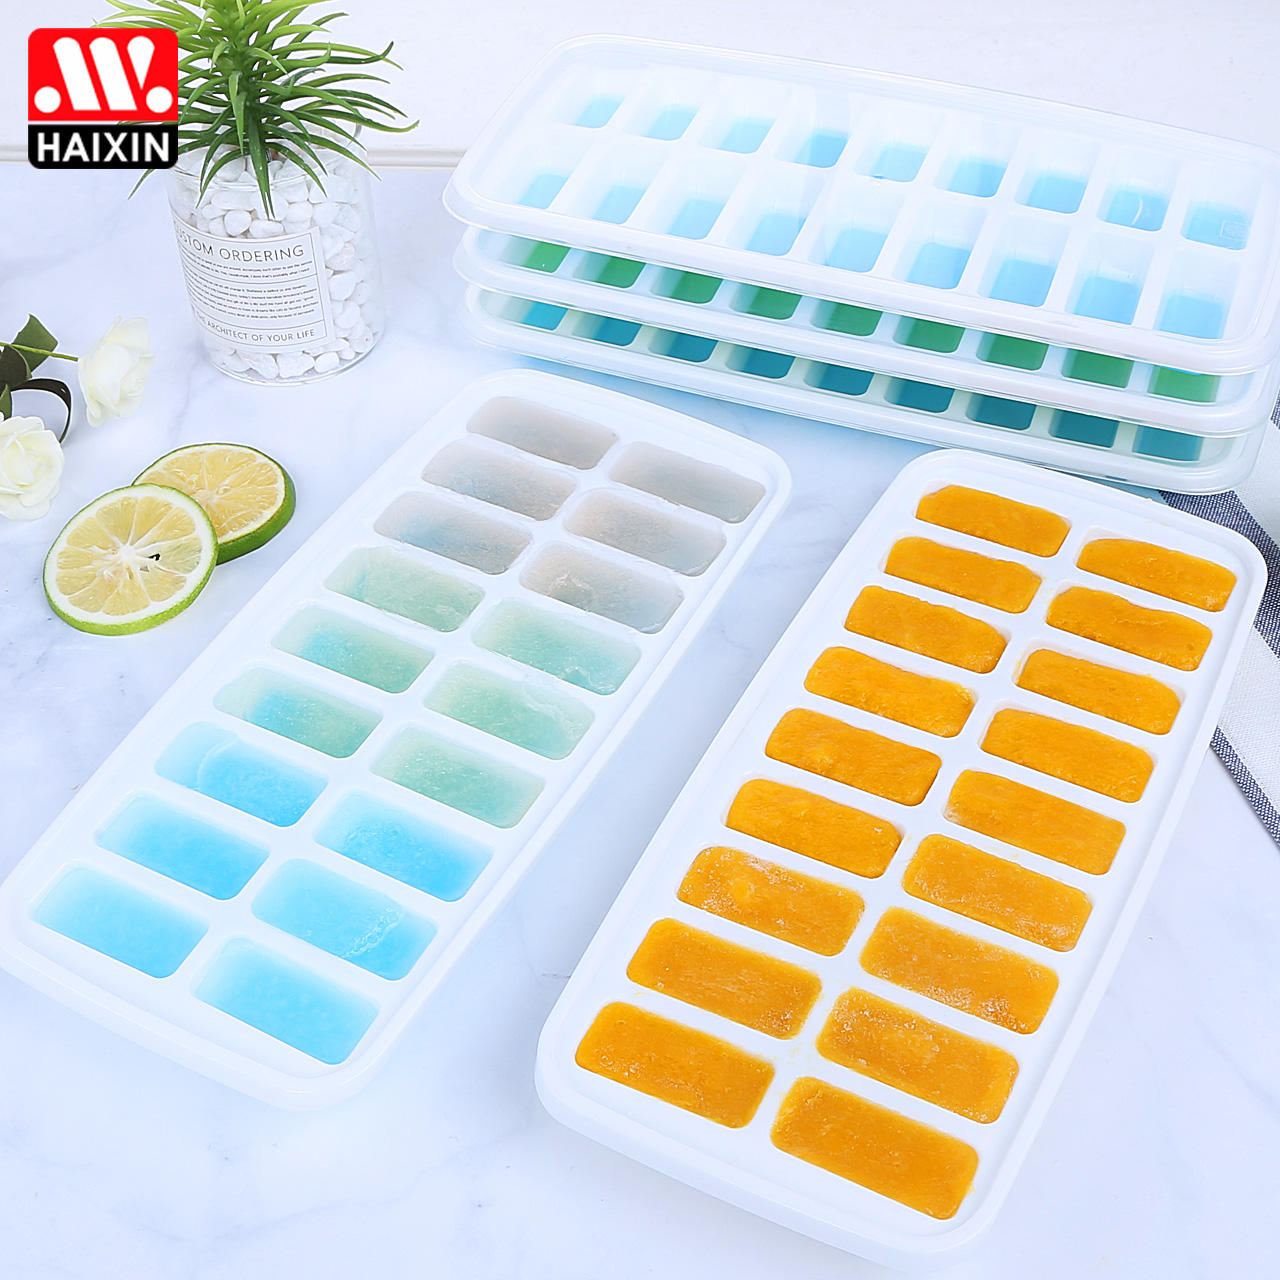 Haixin Best sale BPA free ice cube tray easy release ice cube holder with lid in Amazon